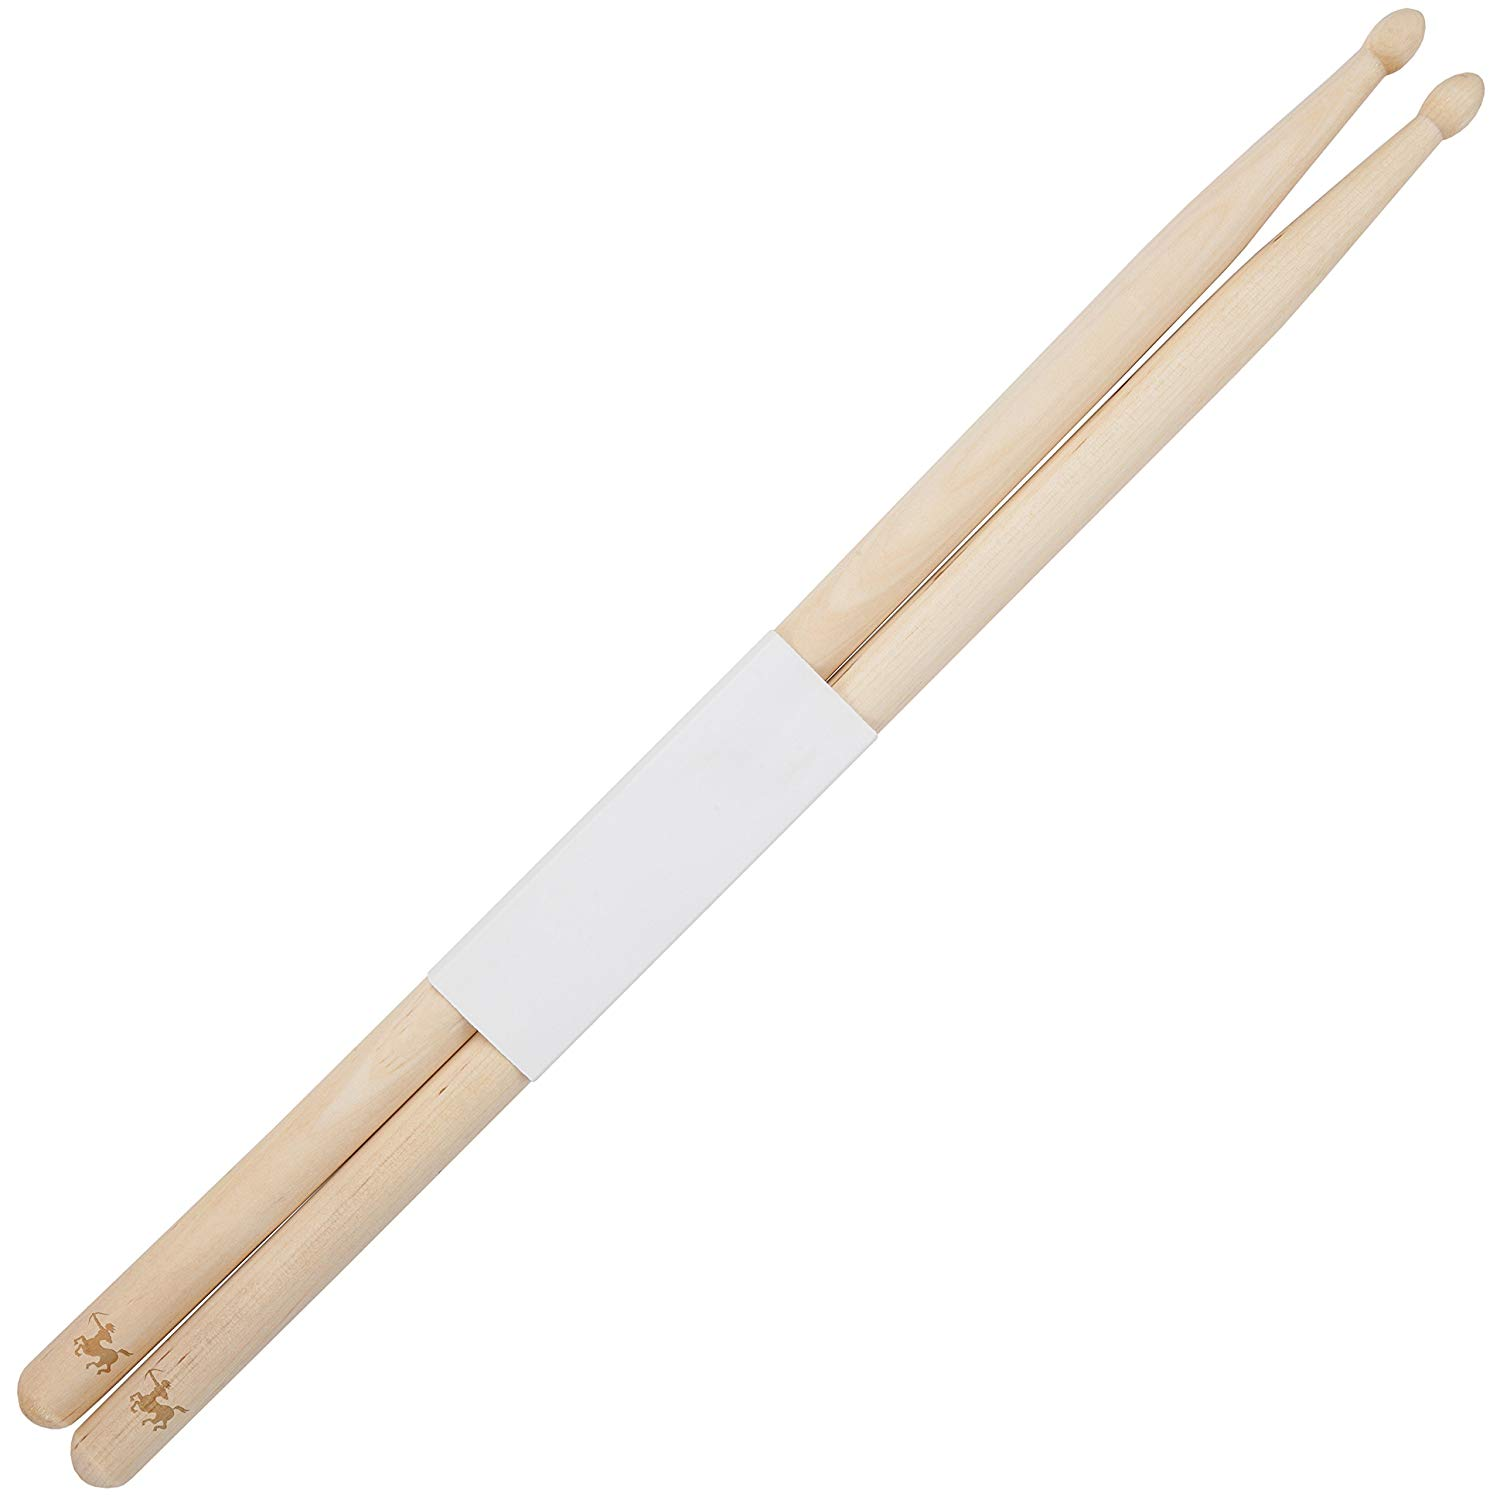 Sagittarius 5B Maple Drumsticks With Laser Engraved Design - Durable Drumstick Set With Wooden Tip - Wood Drumsticks Gift